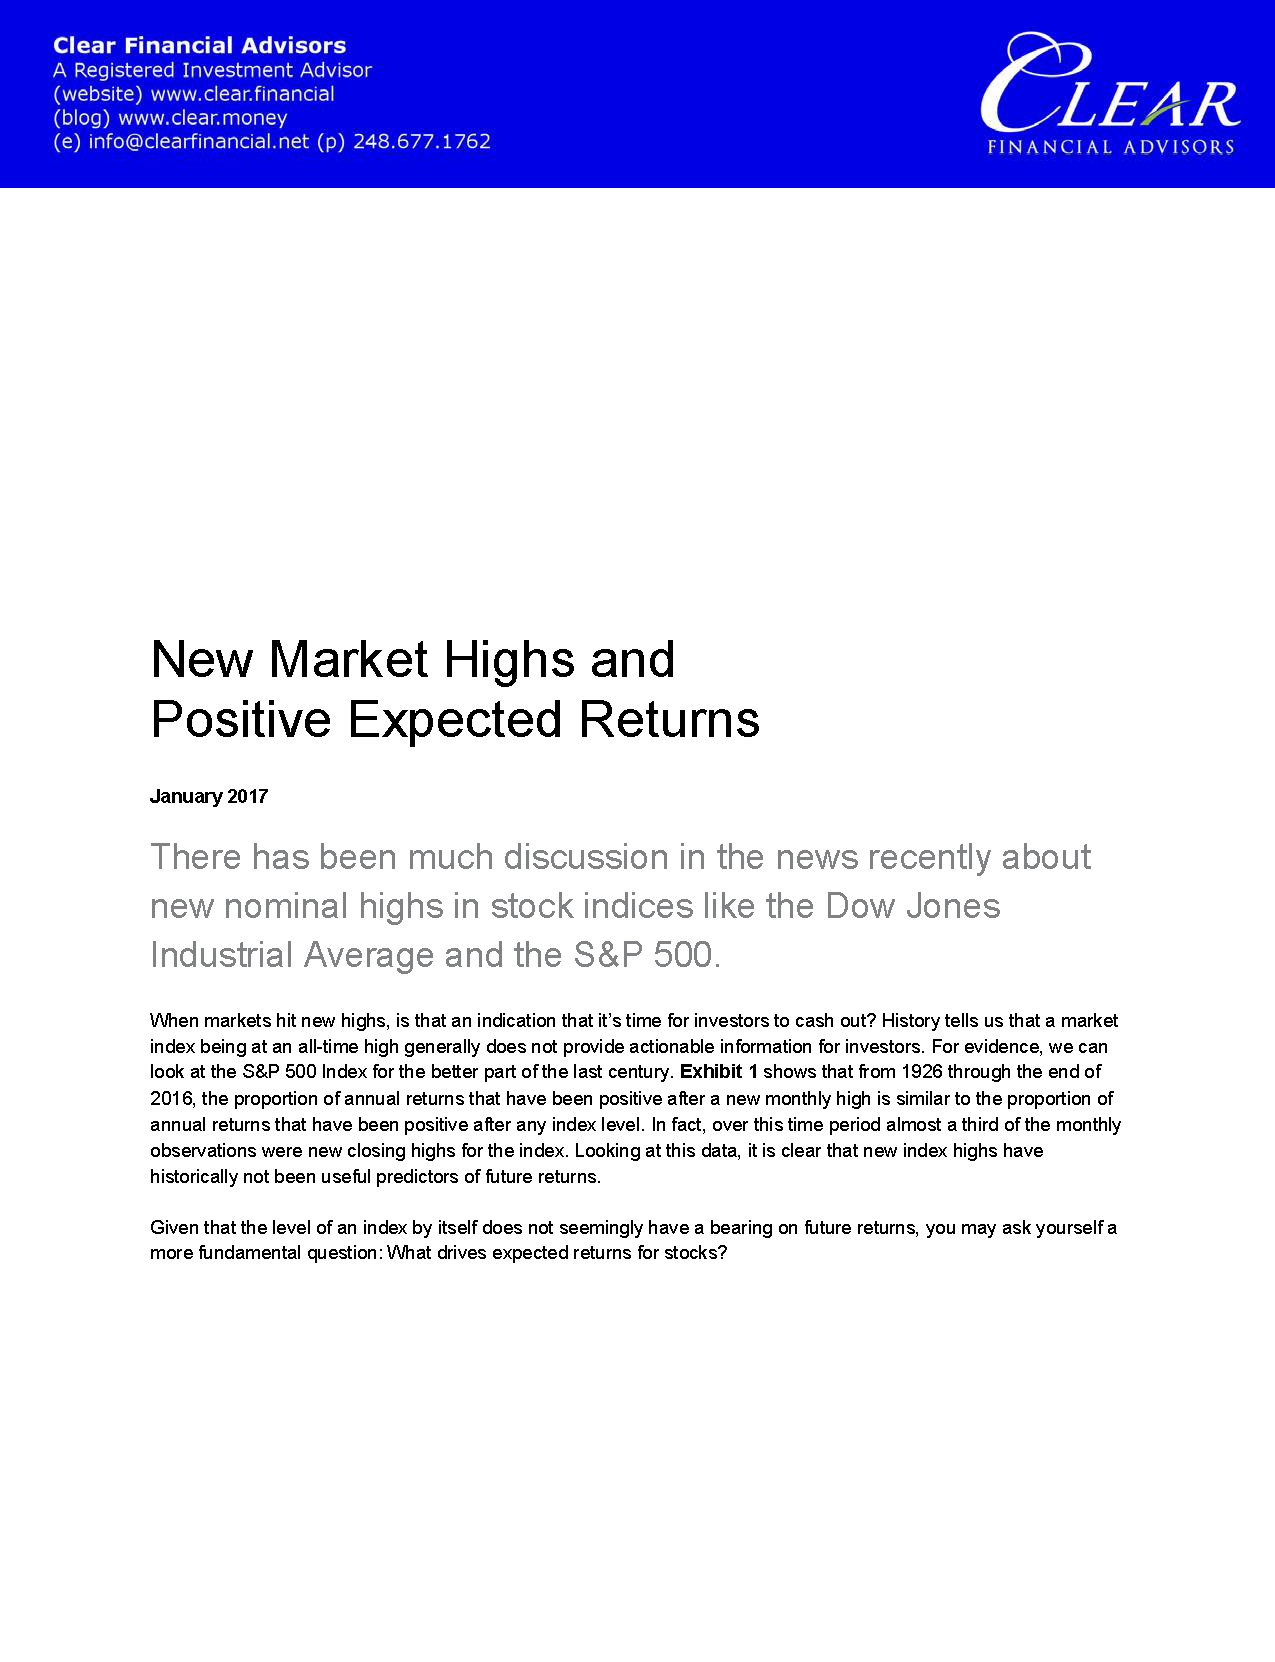 New Market Highs and Positive Expected Returns_Page_1